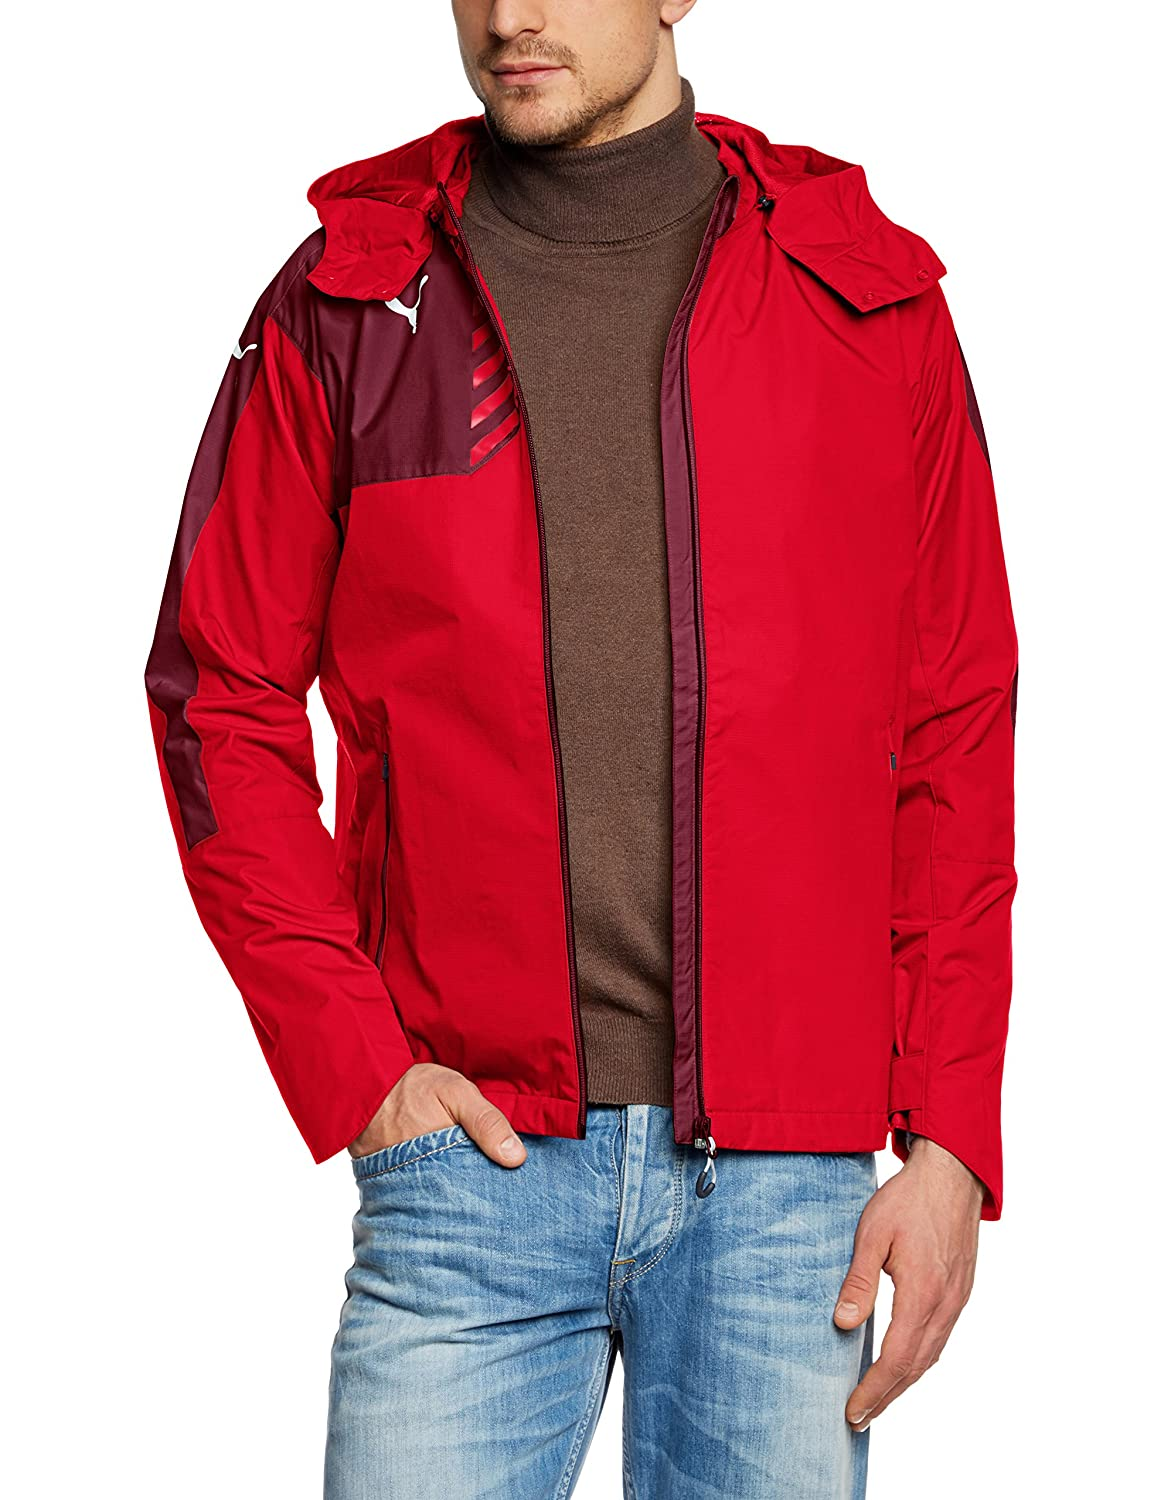 Redpuma red L Puma Men's Jacke Mestre Rain Jacket